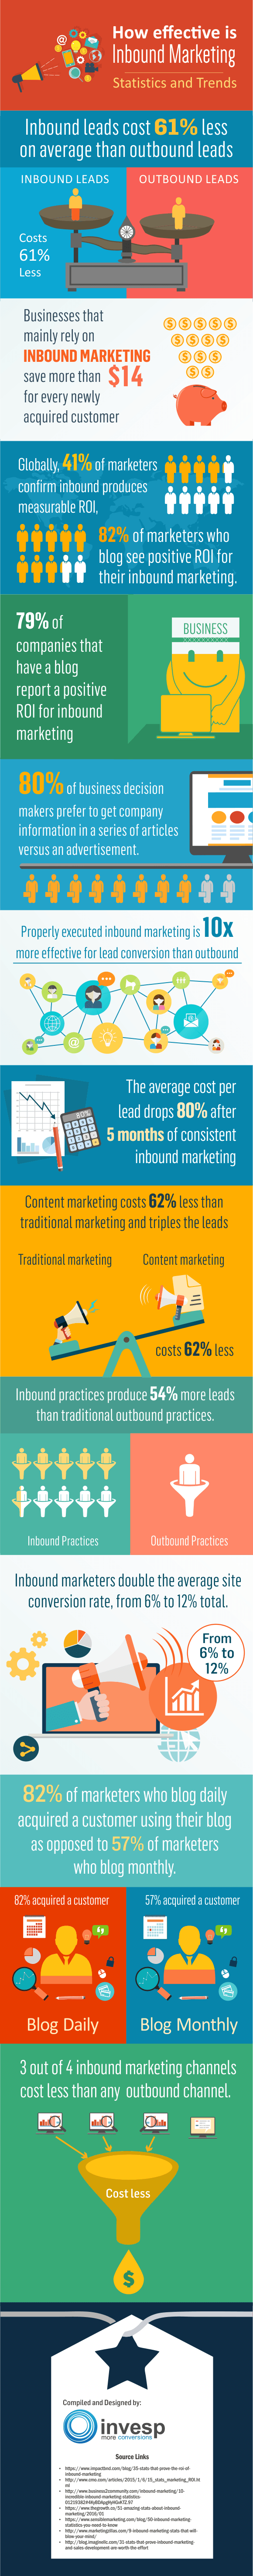 pourquoi inbound marketing - les avantages de l'Inbound Marketing